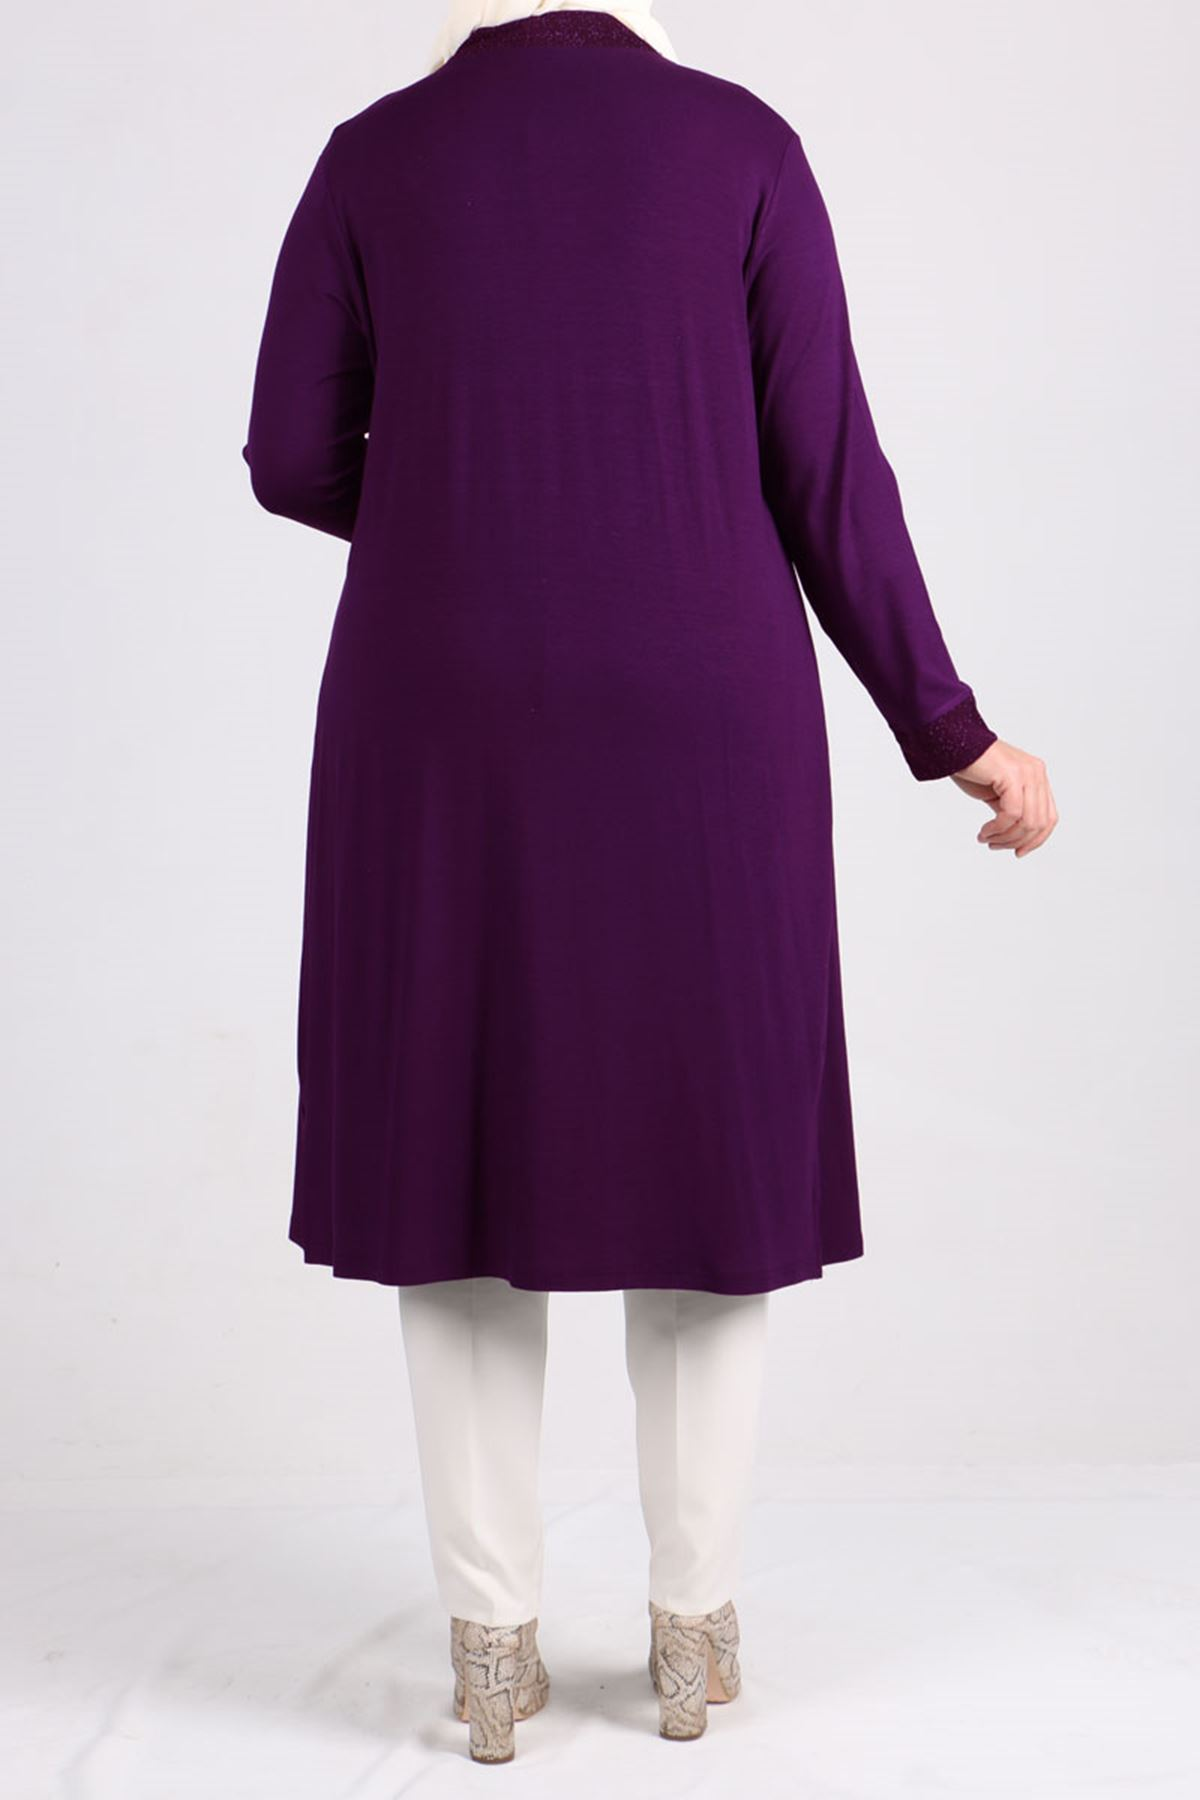 7112 Plus Size Two Piece Set with Tunic and Jacket- Purple